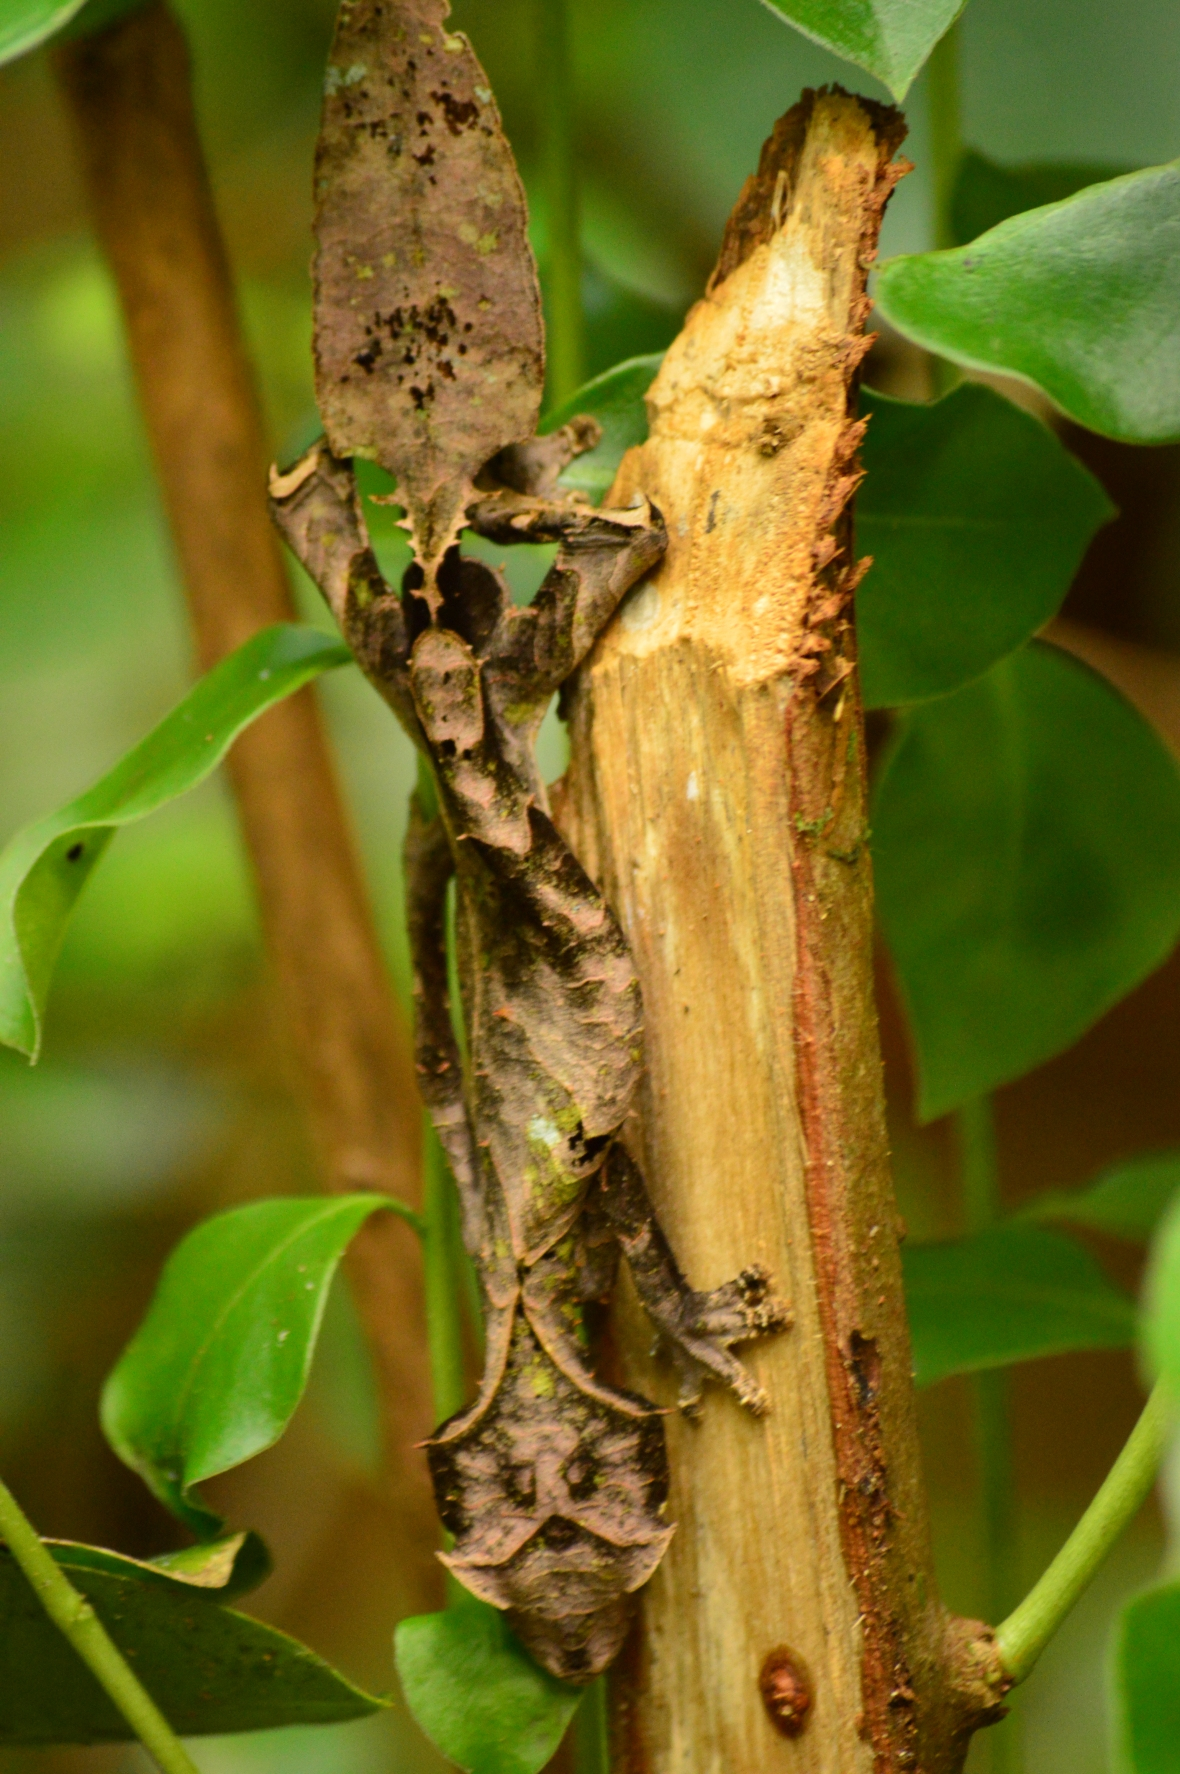 Leaf tail gecko is the master of camouflage in in Ranomafana National Park, Madagascar